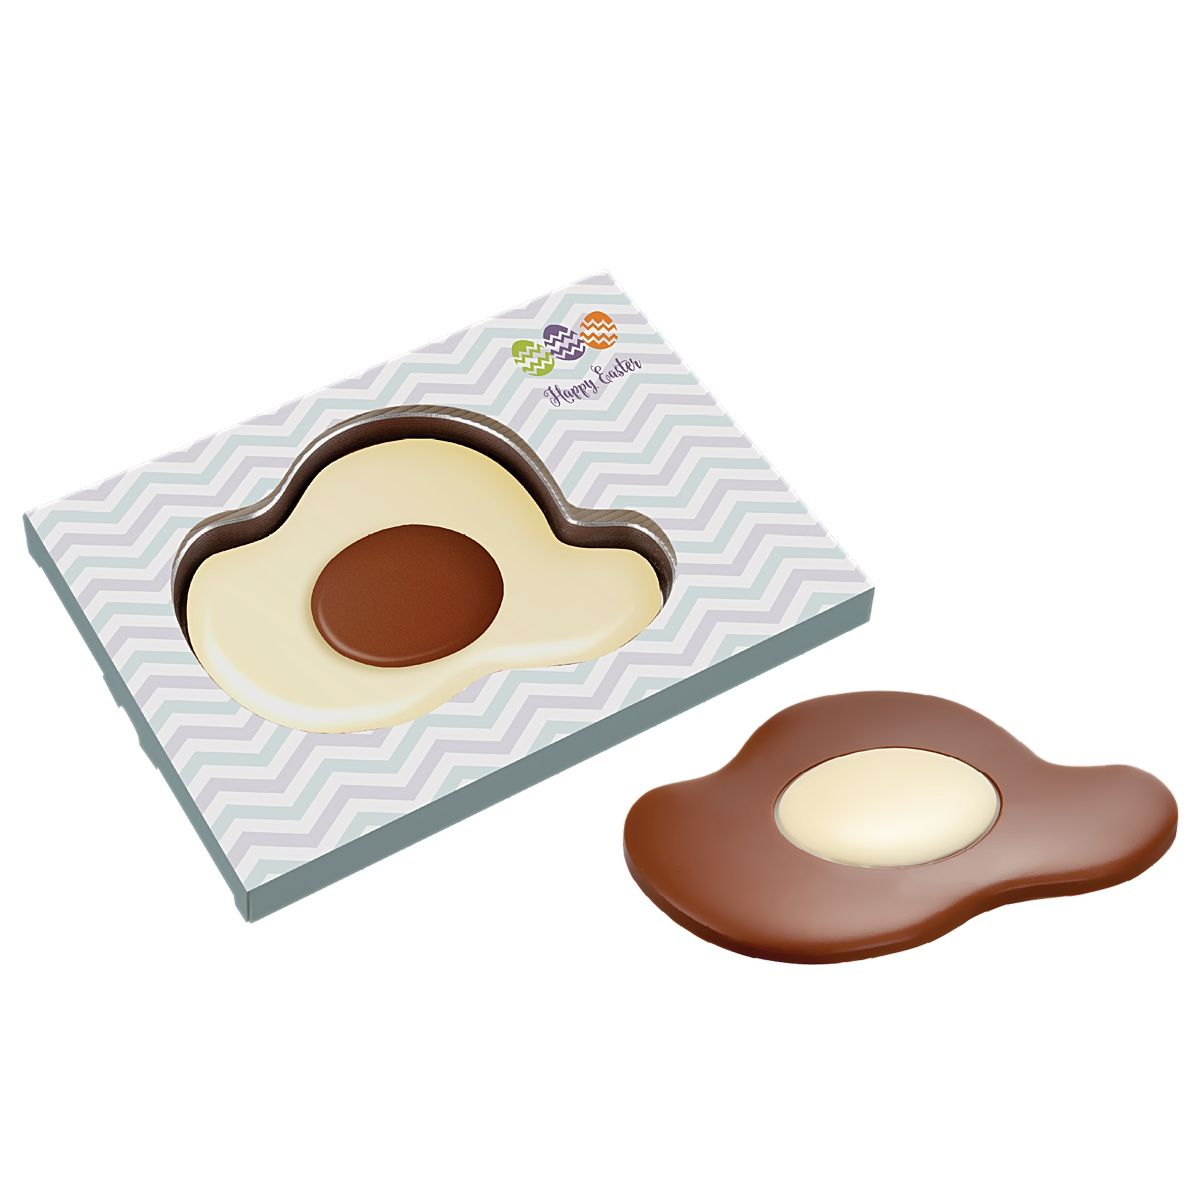 Promotional chocolate fried eggs from redbows brand with your logo promotional chocolate fried eggs from redbows brand with your logo promotional eastereggs negle Image collections